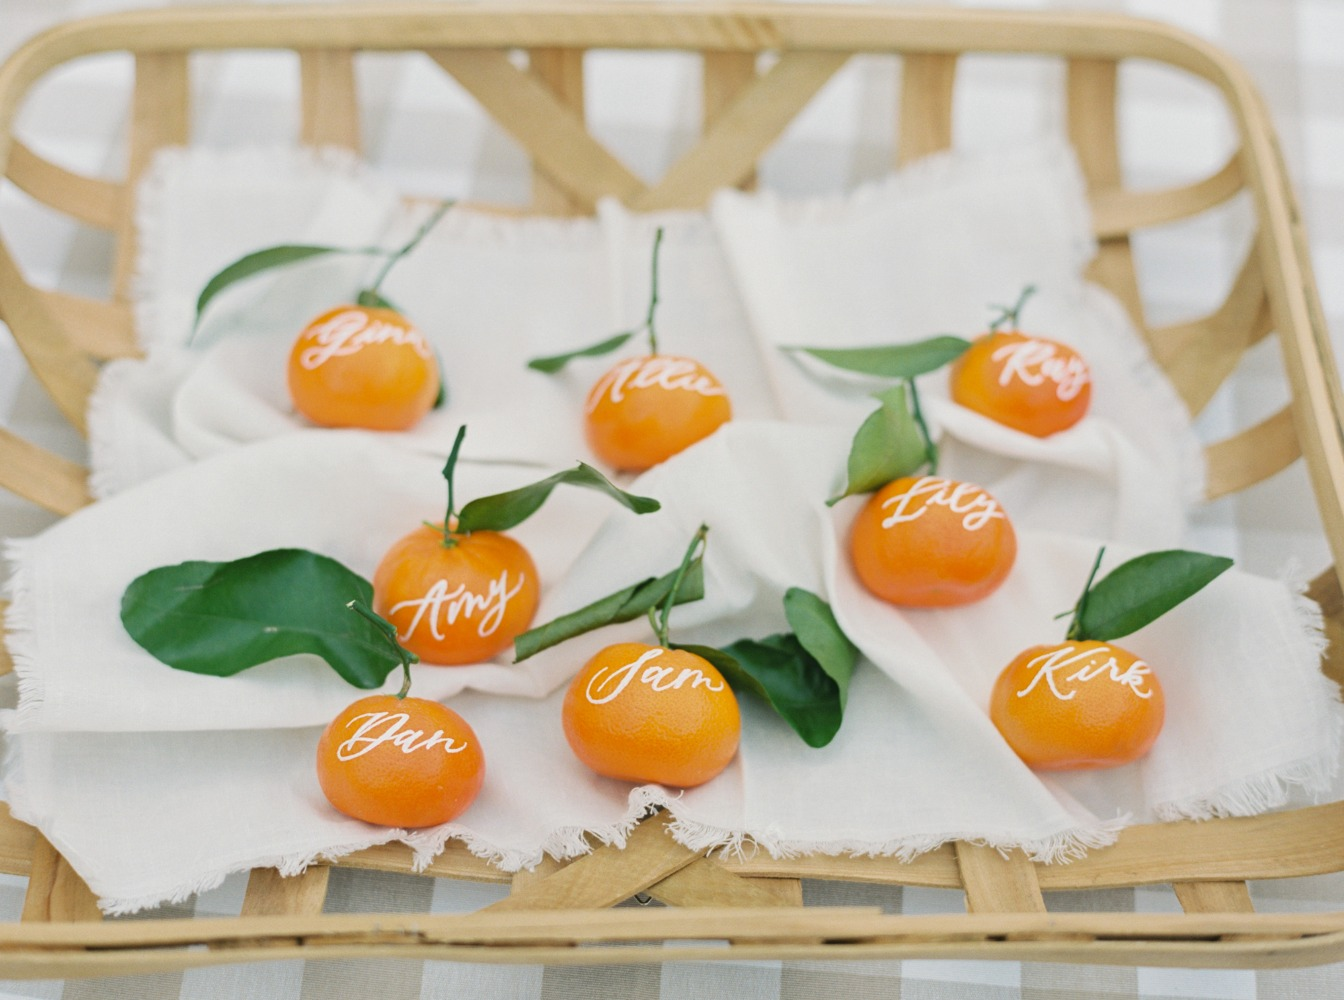 Clementine oranges used as escort cards